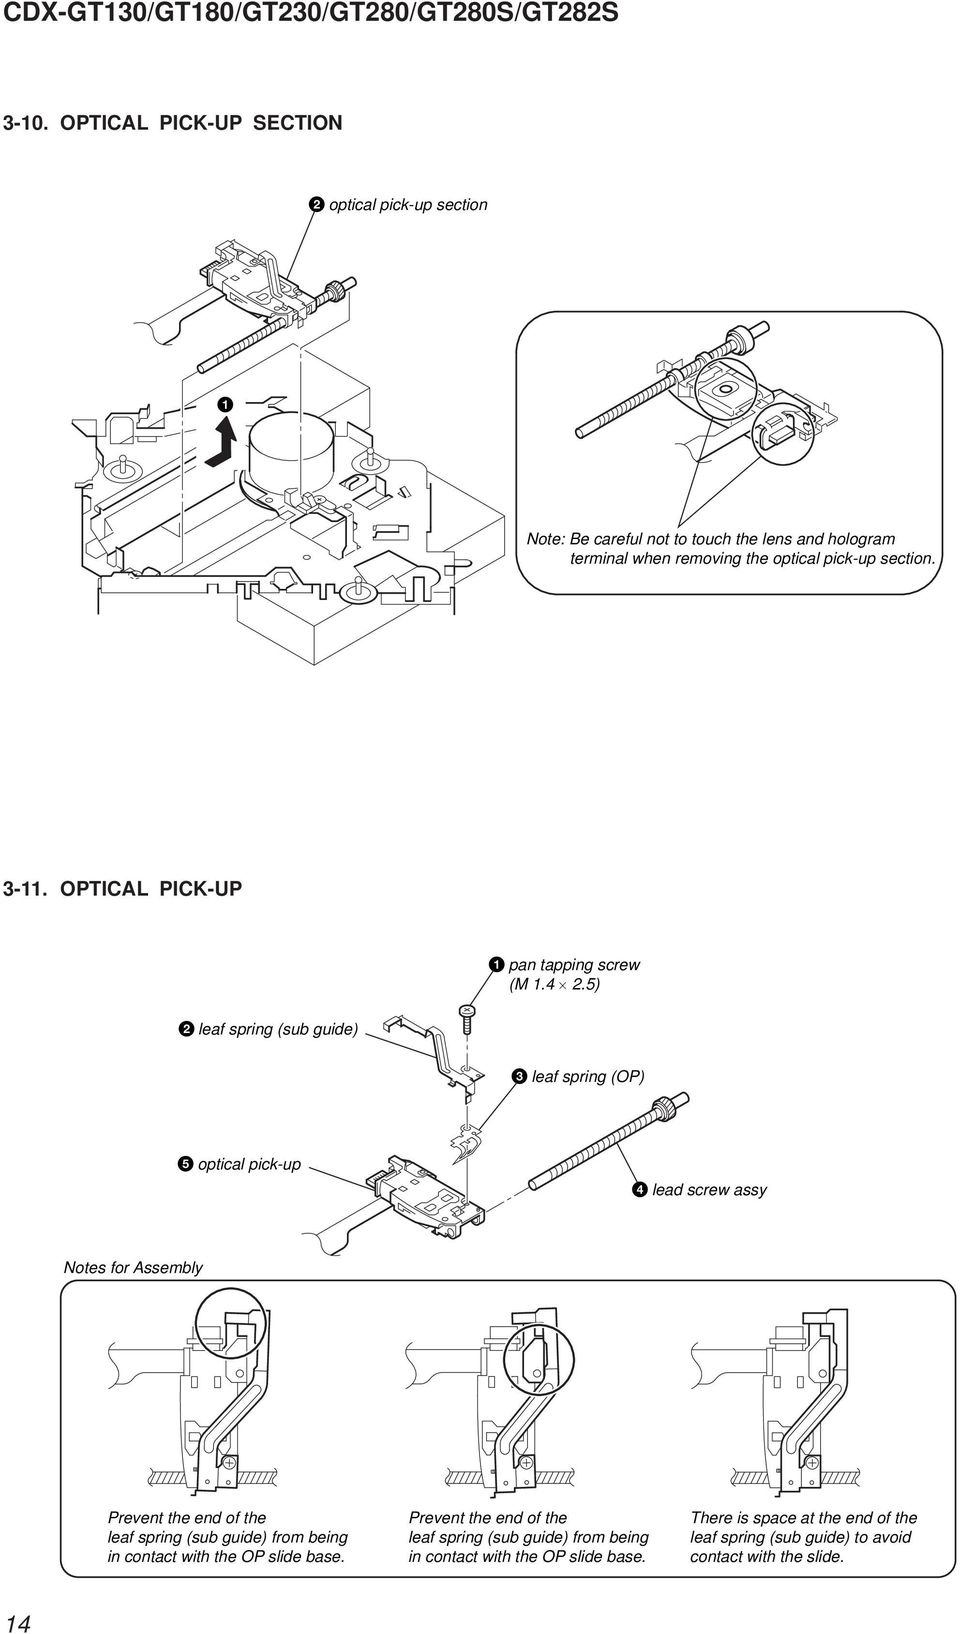 Photo Cdx Gt130 Specifications Pdf Sony Wiring Diagram Get Free Image About 5 Leaf Spring Sub Guide Op Optical Pick